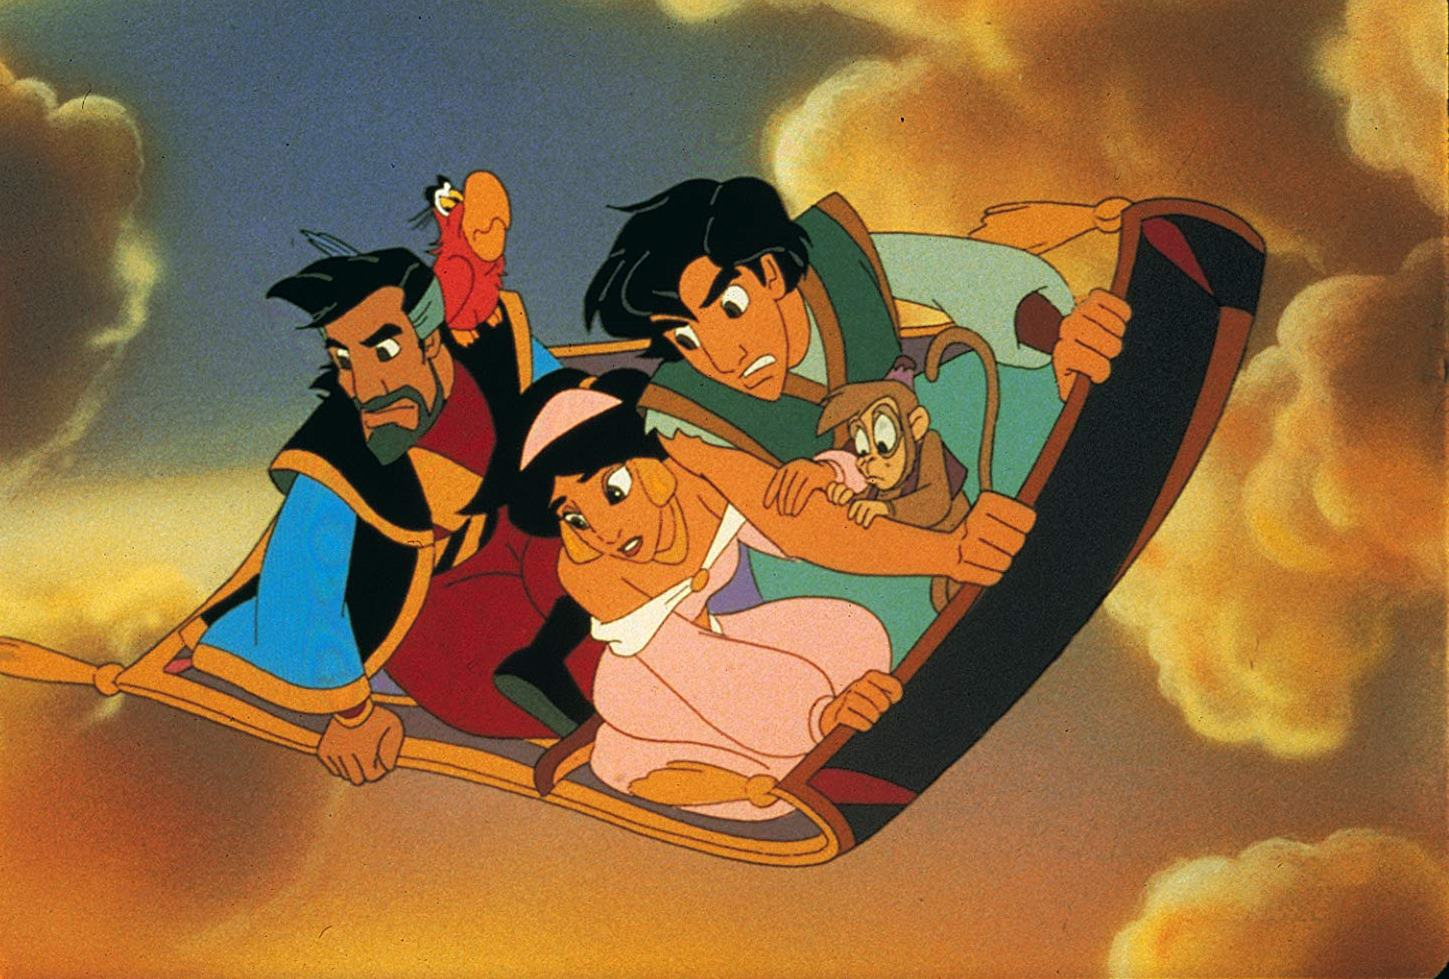 (l to r) Aladdin's father Kassim (voiced by John Rhys-Davies), Iago the parrot (voiced by Gilbert Gottfried), Jasmine (voiced by Linda Larkin), Aladdin (voiced by Scott Weinger) and Abu the monkey in Aladdin and the King of Thieves (1996)